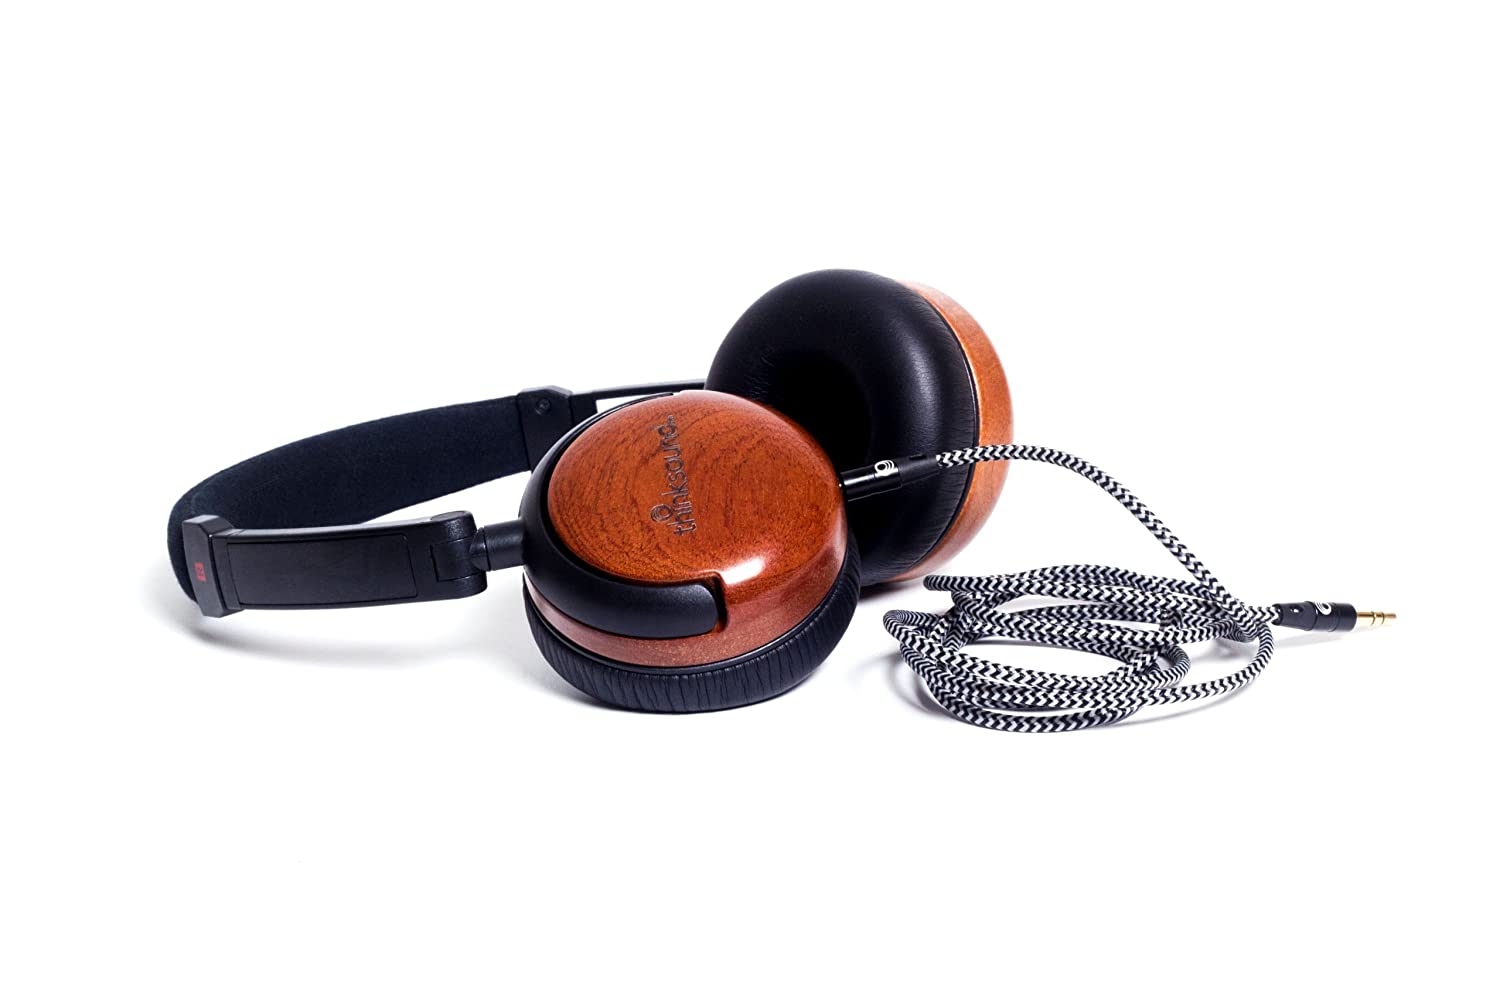 Thinksound On1 Natblk Supra Aural On Ear Monitor Wooden Bri Bang Ampamp Olufsen Beoplay H6 Premium Over Headphones 2nd Gen Natural Headphone Black Home Audio Theater